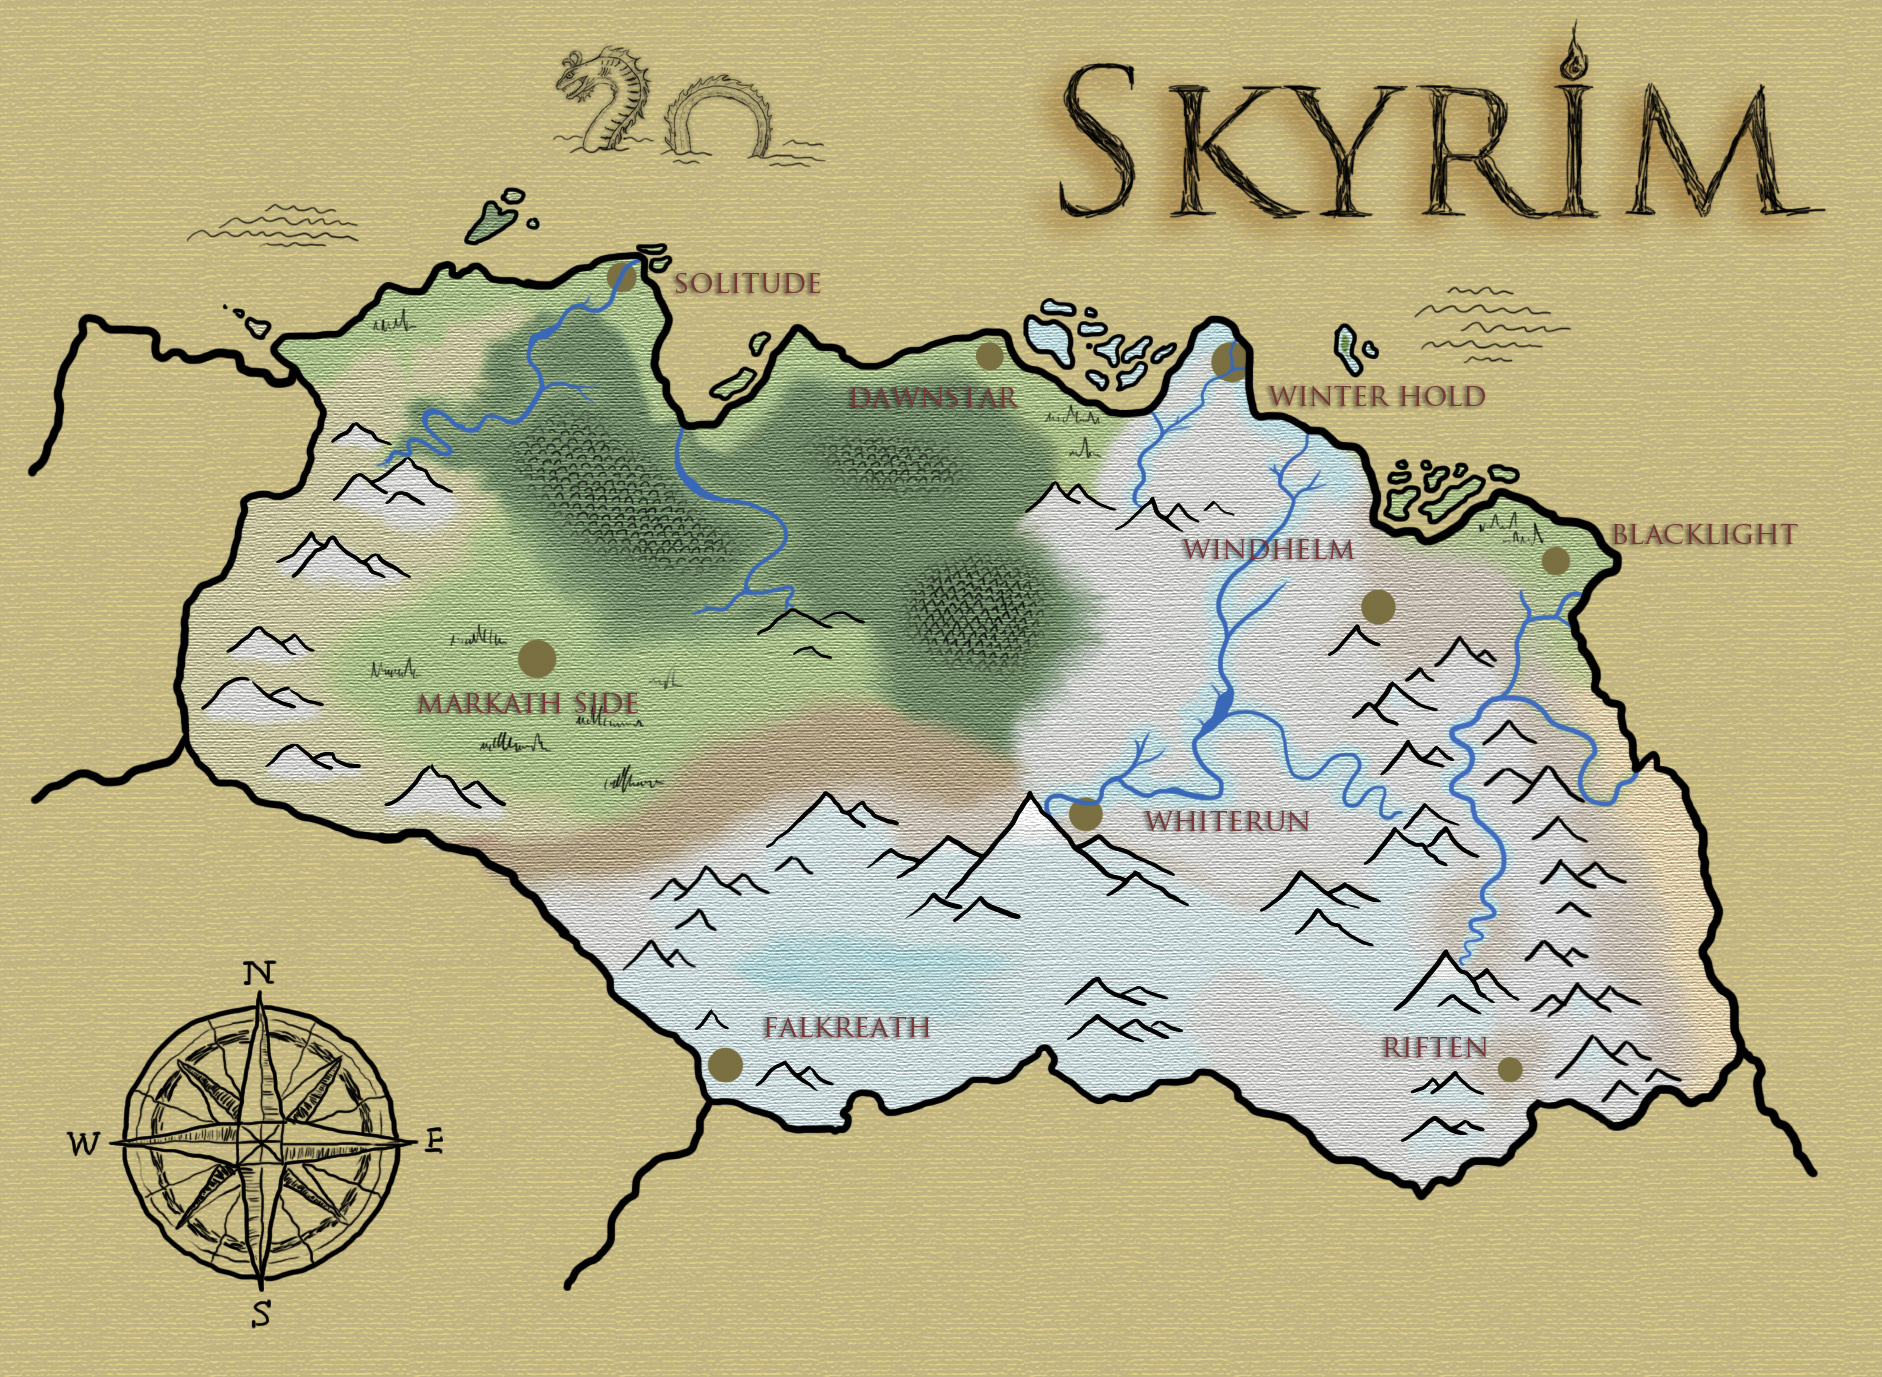 The Skyrim map : V - Skyrim on just cause 2 map, elsweyr map, dark souls map, dragonborn map, elder scrolls map, dead island map, battlefield 3 map, knights of the nine map, riften map, l.a. noire map, cyrodiil map, whiterun map, morrowind map, mass effect map, pokemon map, minecraft map, oblivion map, halo 4 map, zelda map,